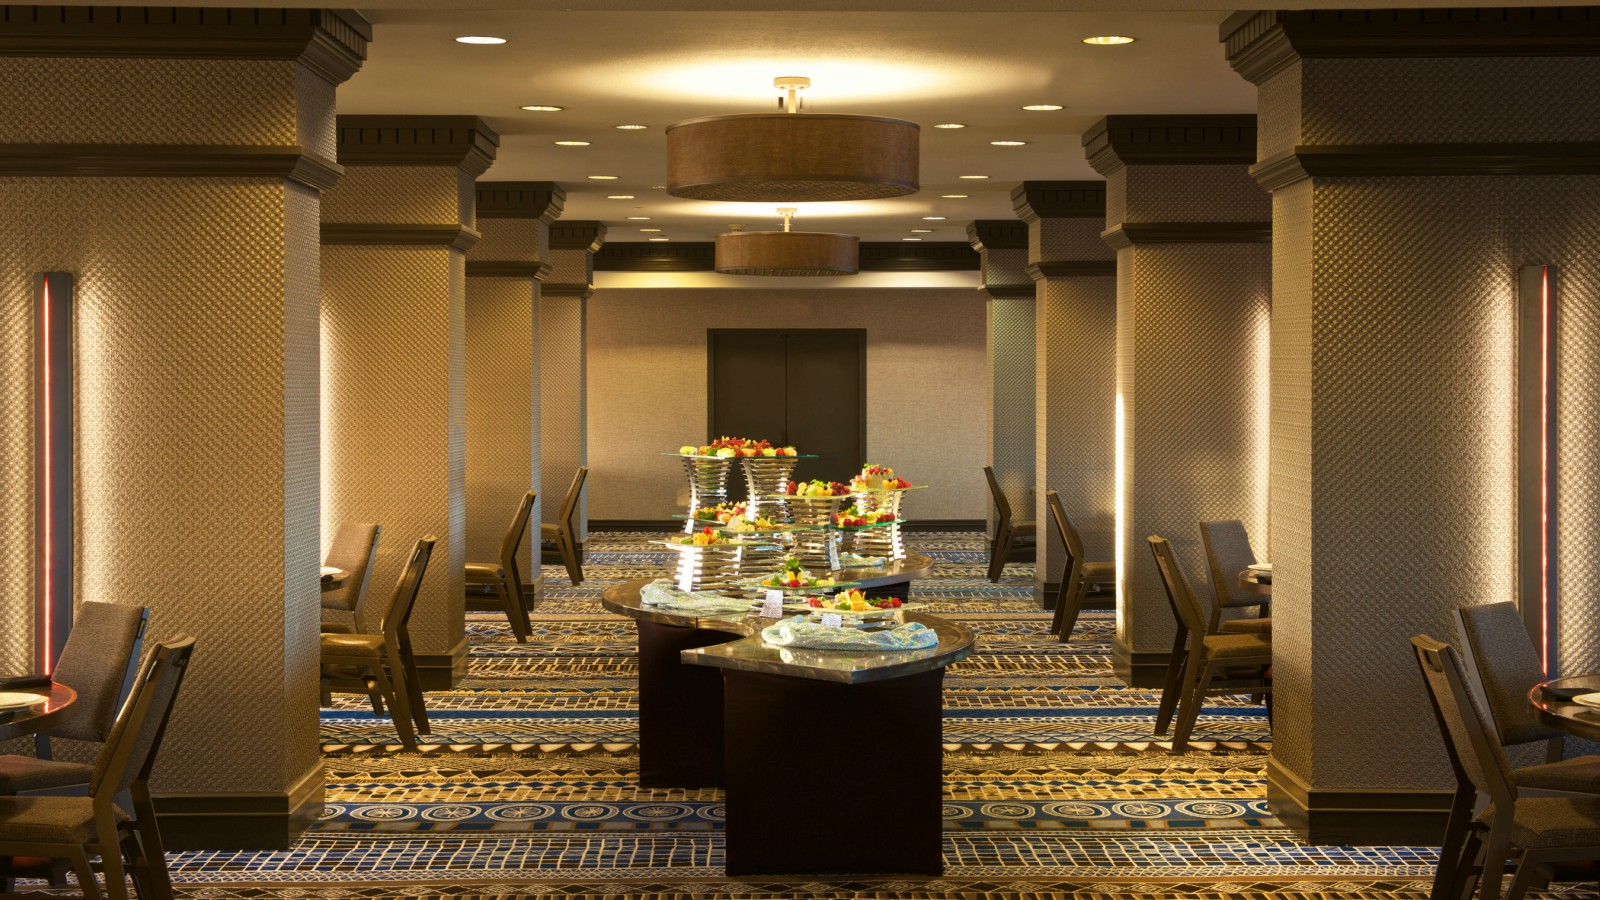 Anchorage Meeting Facilities - Summit Room Event Space